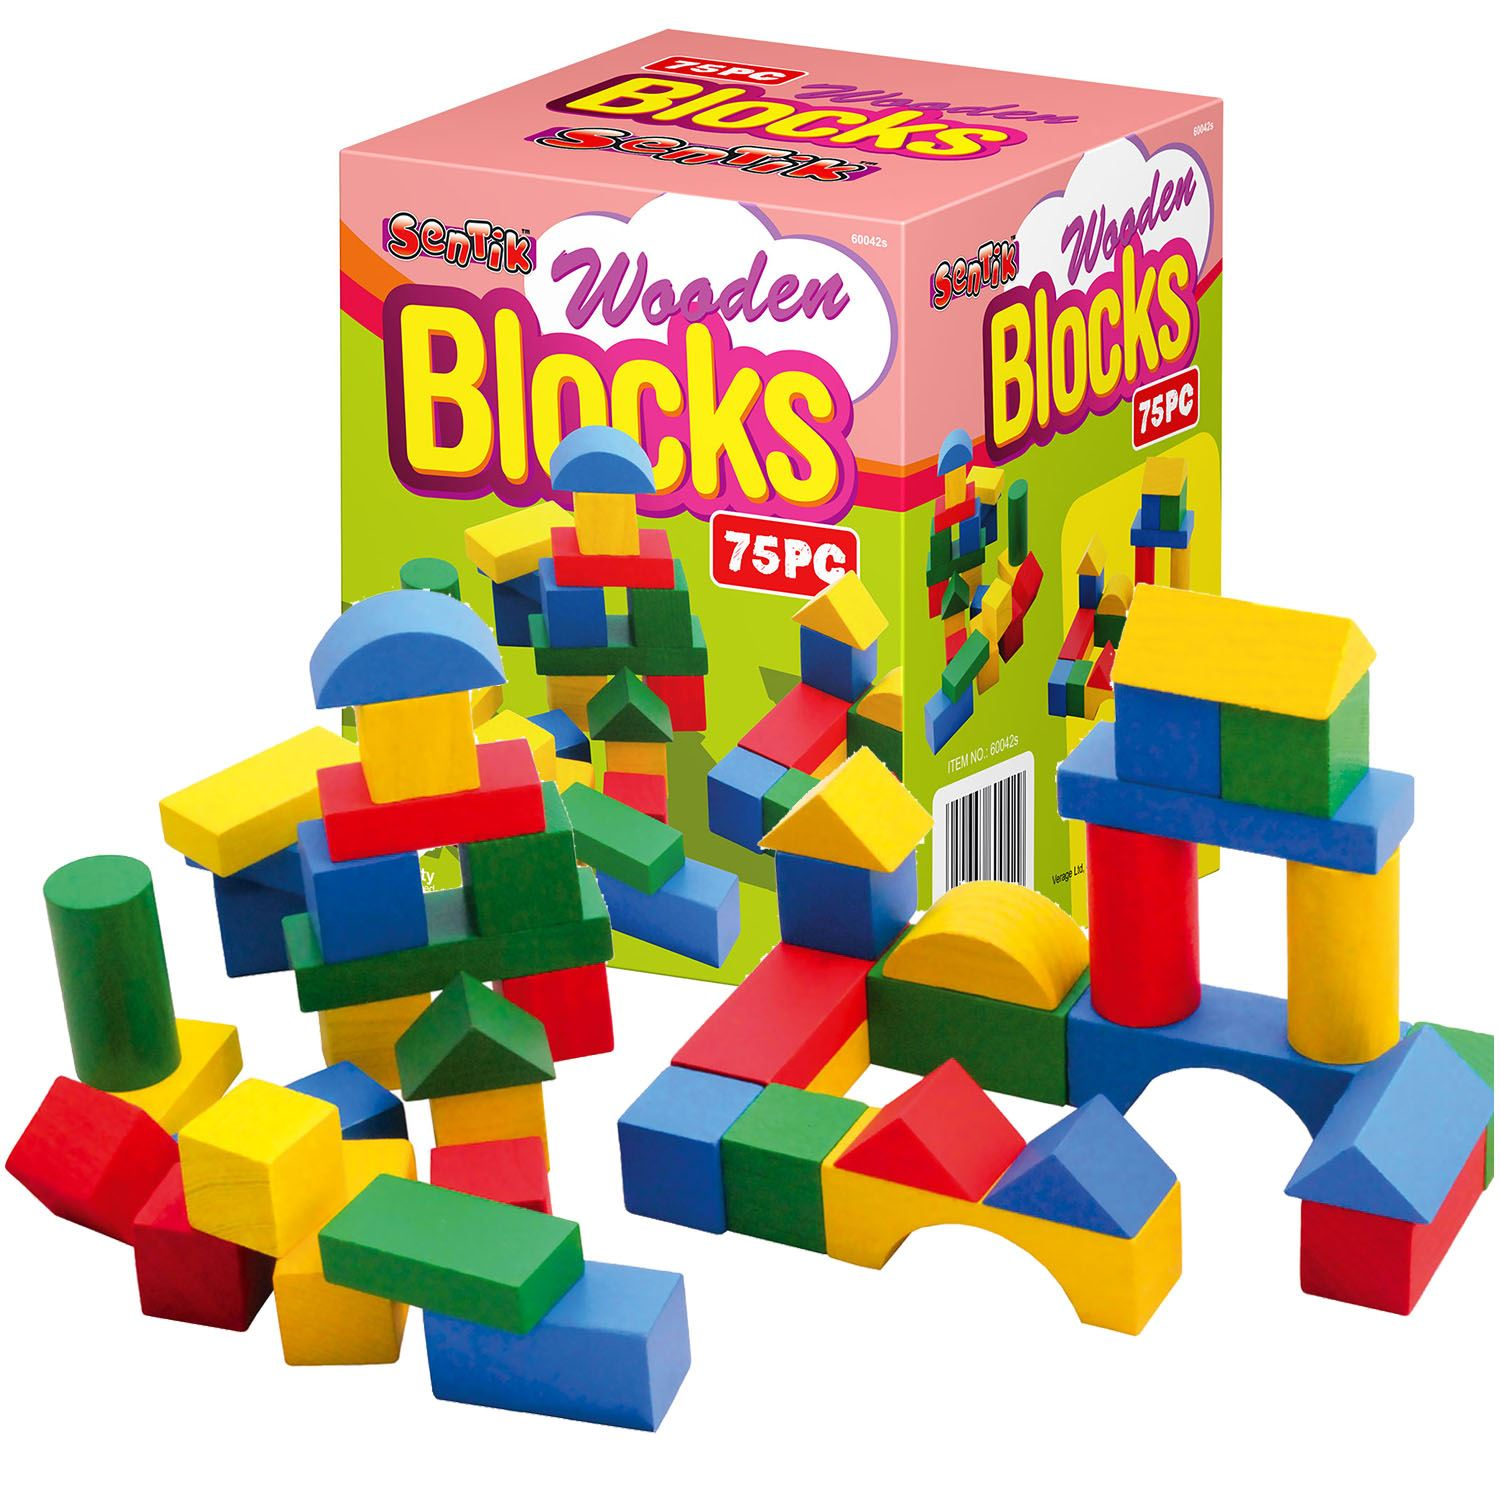 Building Construction Toys : Childrens wooden building blocks kids construction toy